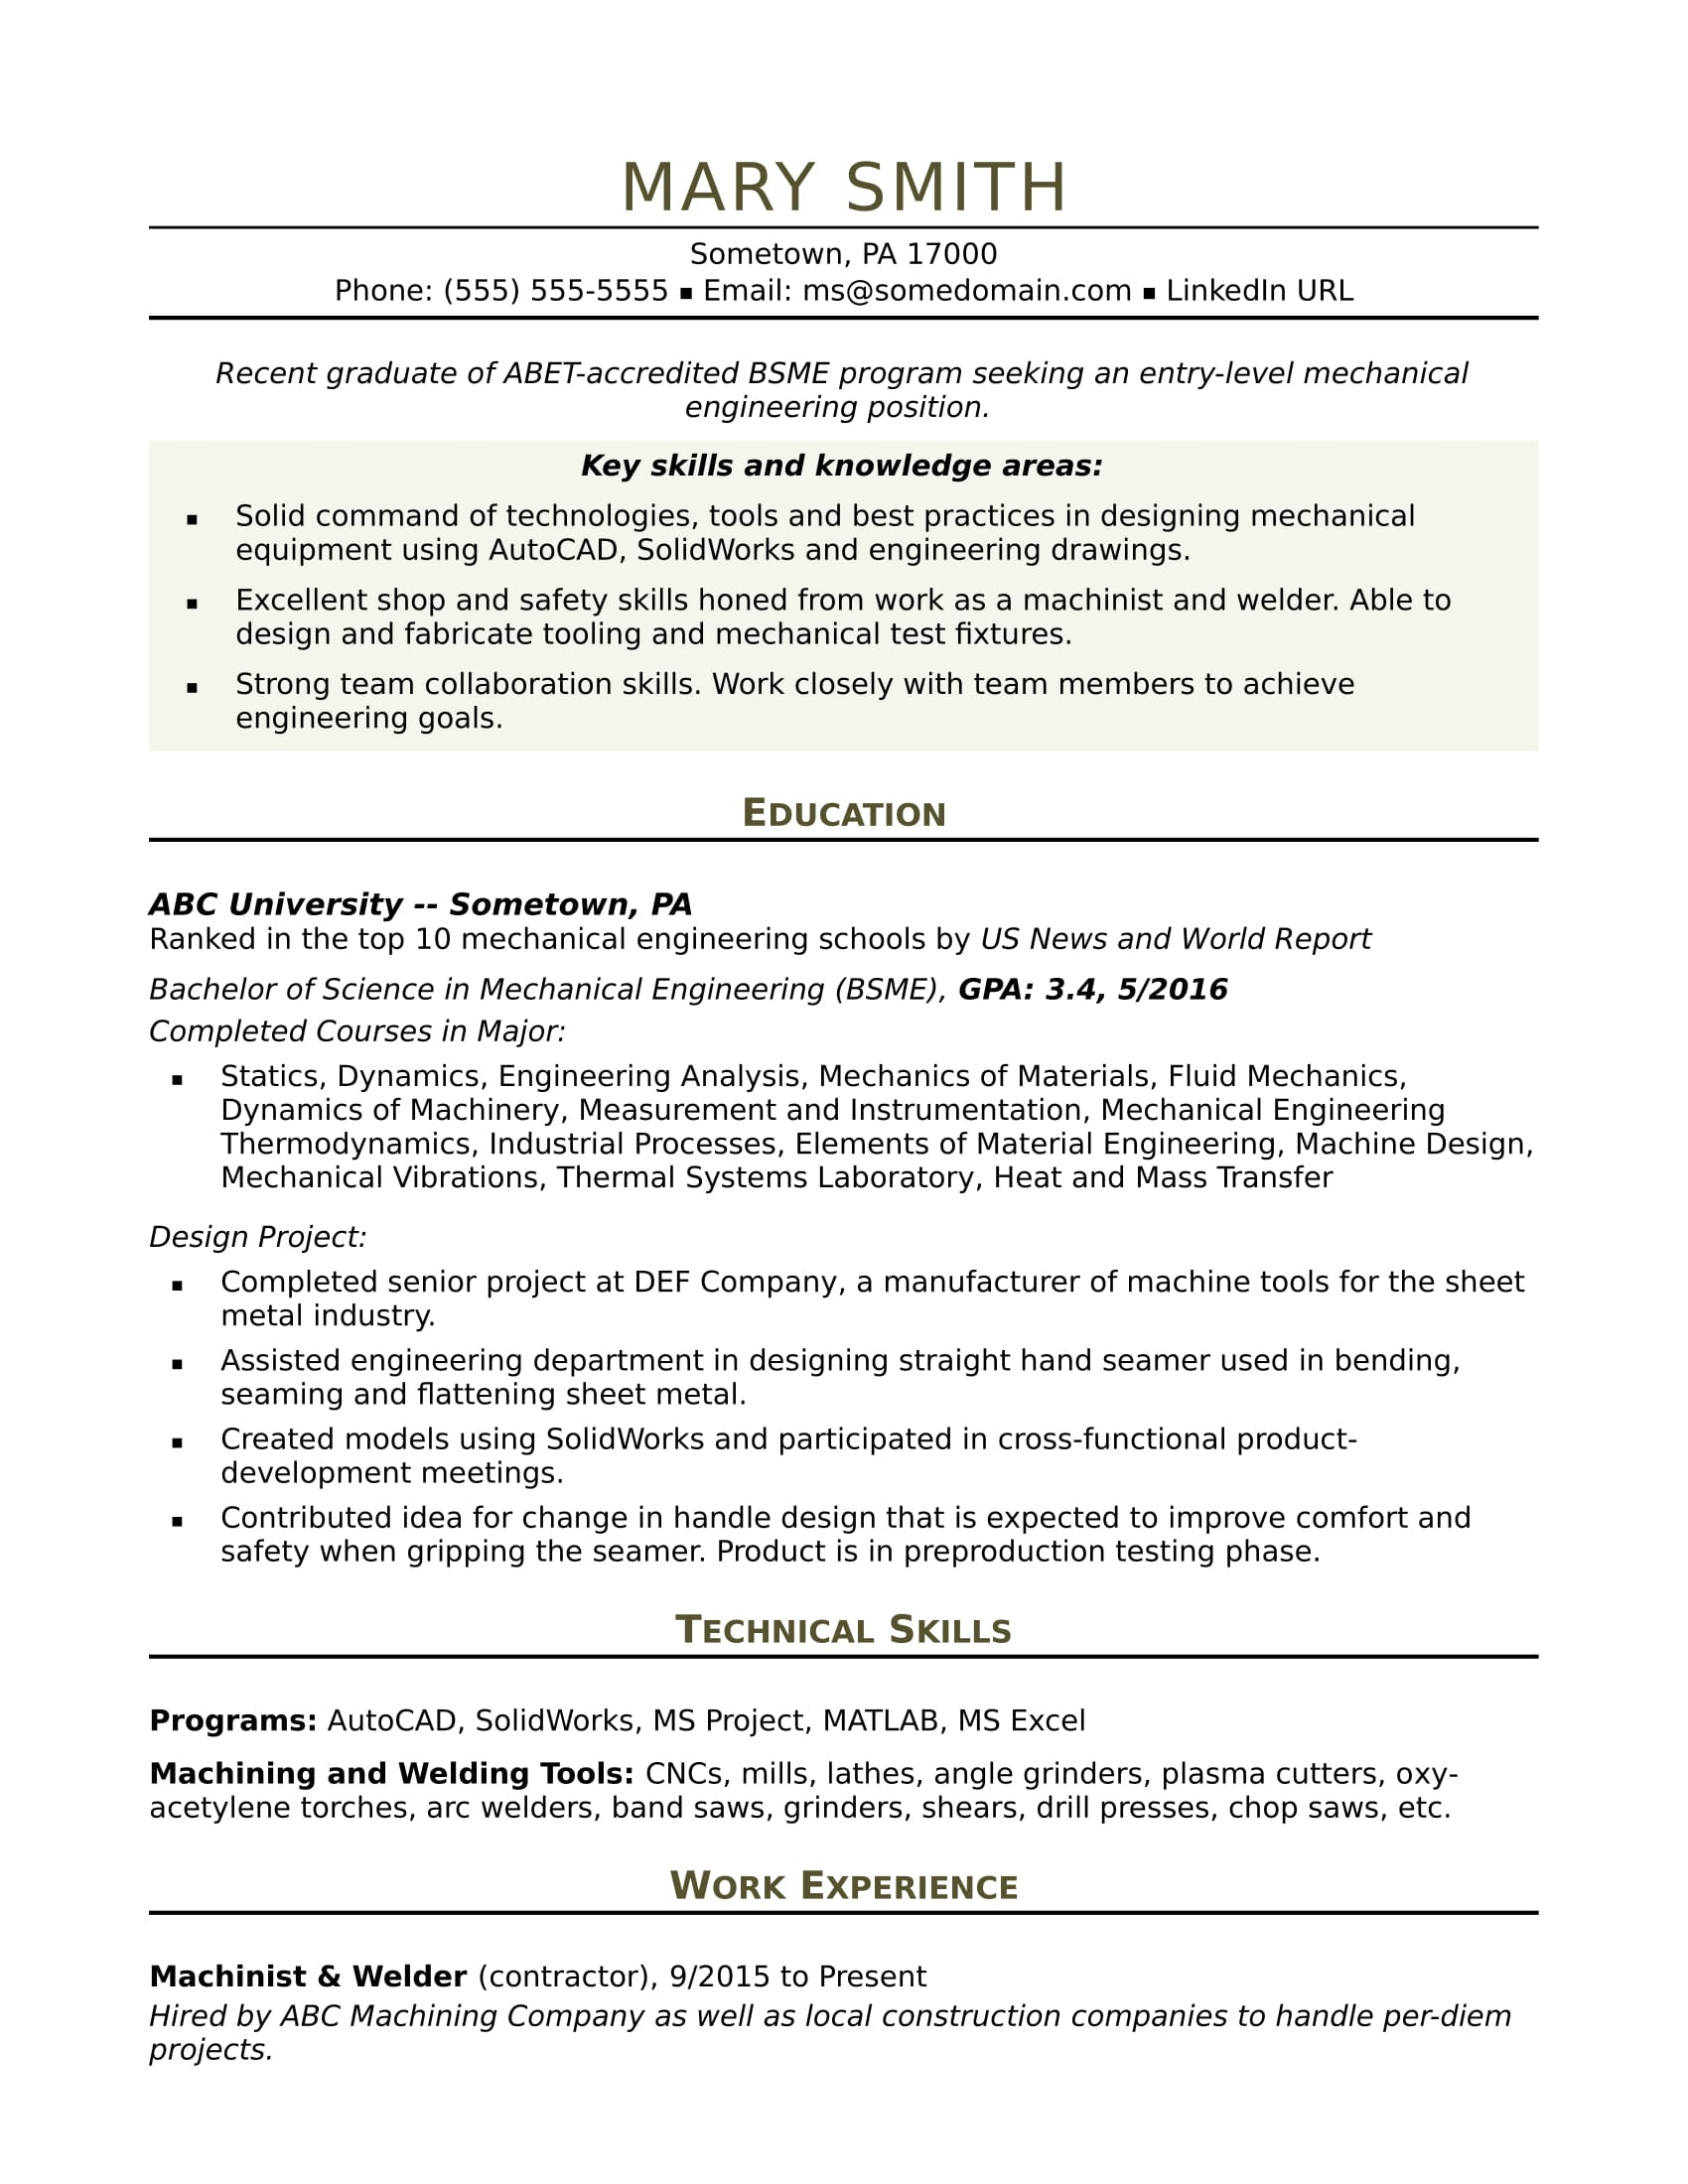 sample resume for an entry level mechanical engineer monster college engineering first Resume College Engineering Resume